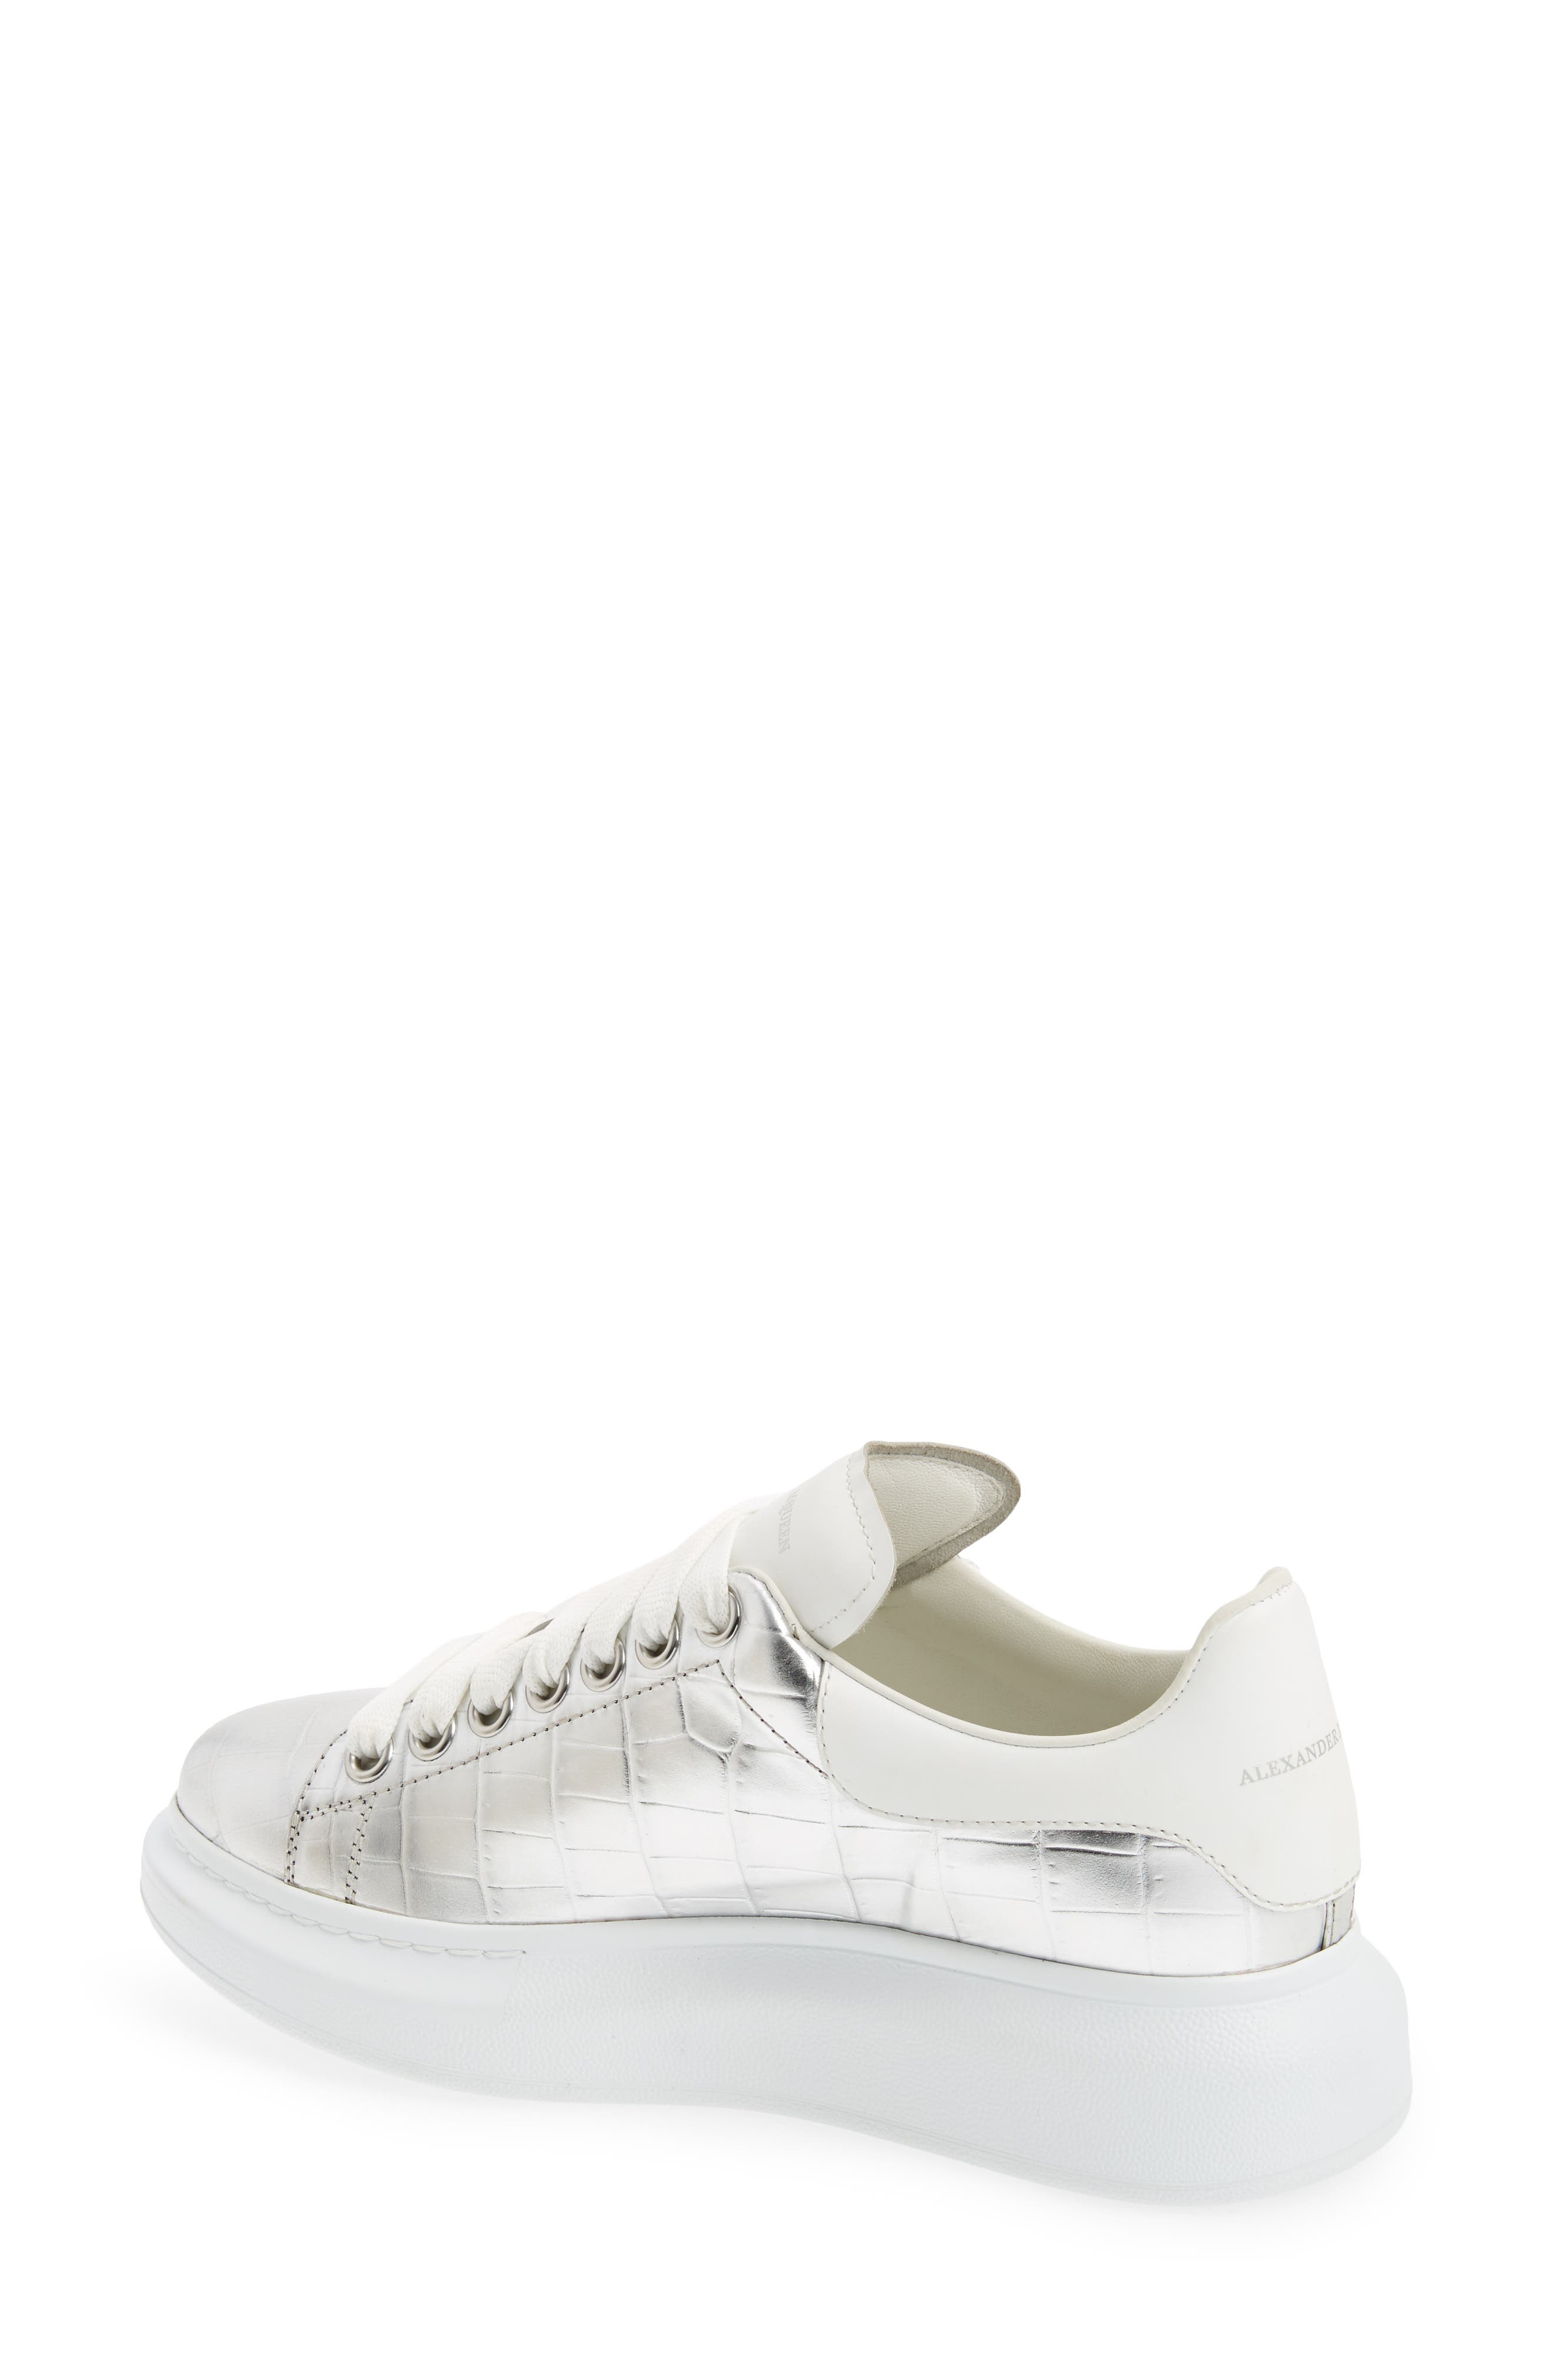 Croc Embossed Lace-Up Sneaker,                             Alternate thumbnail 2, color,                             Metallic Silver